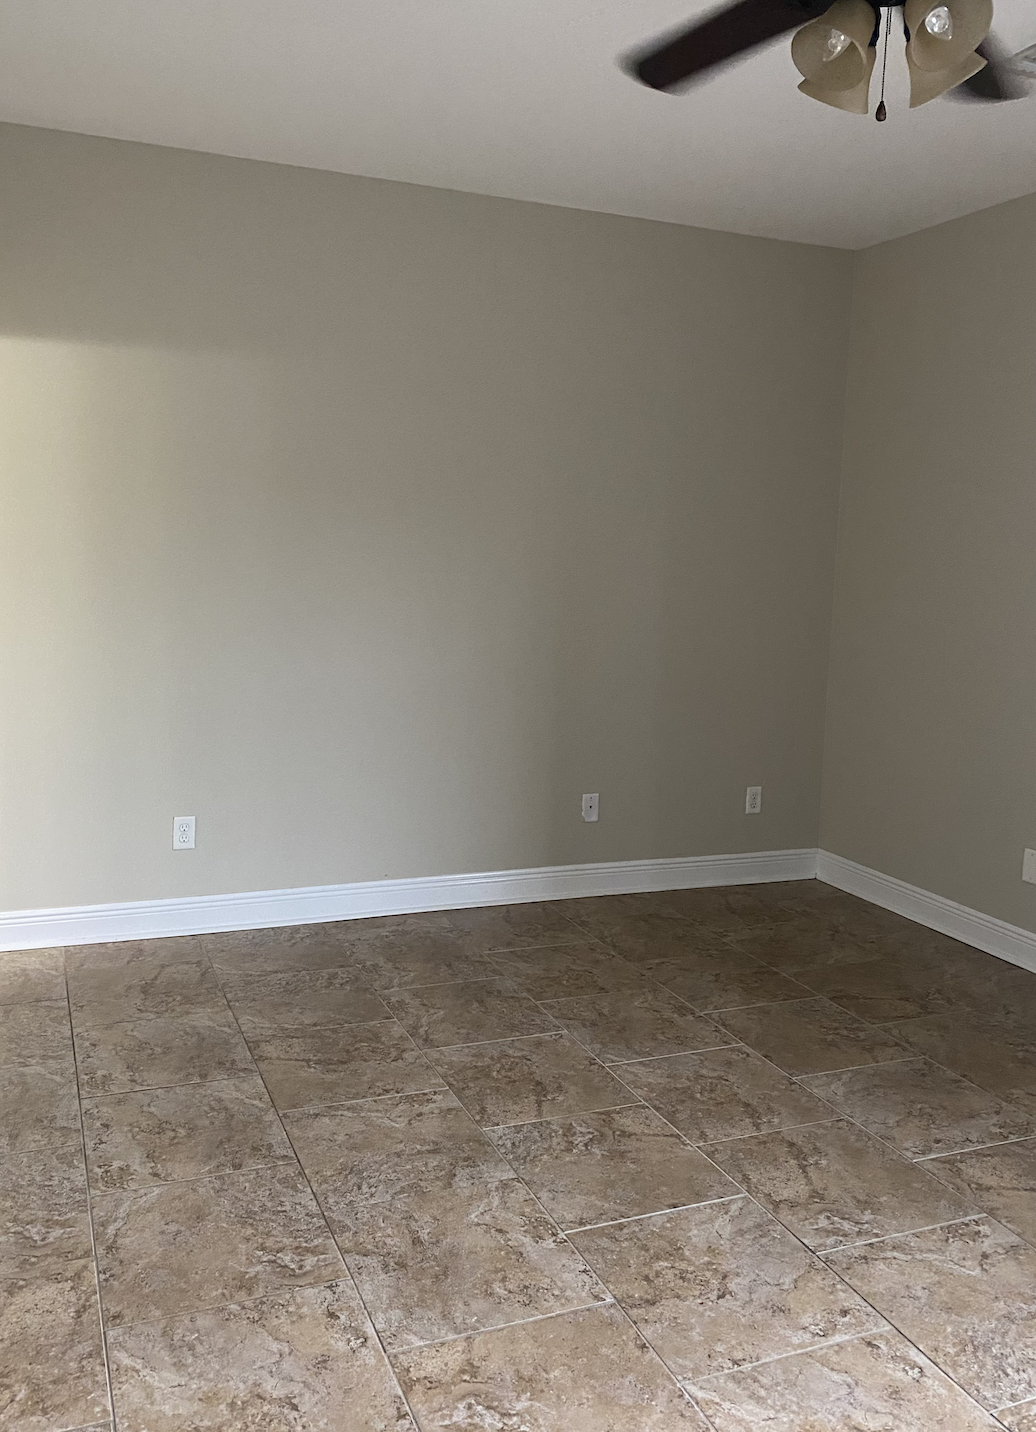 college bedroom before and after